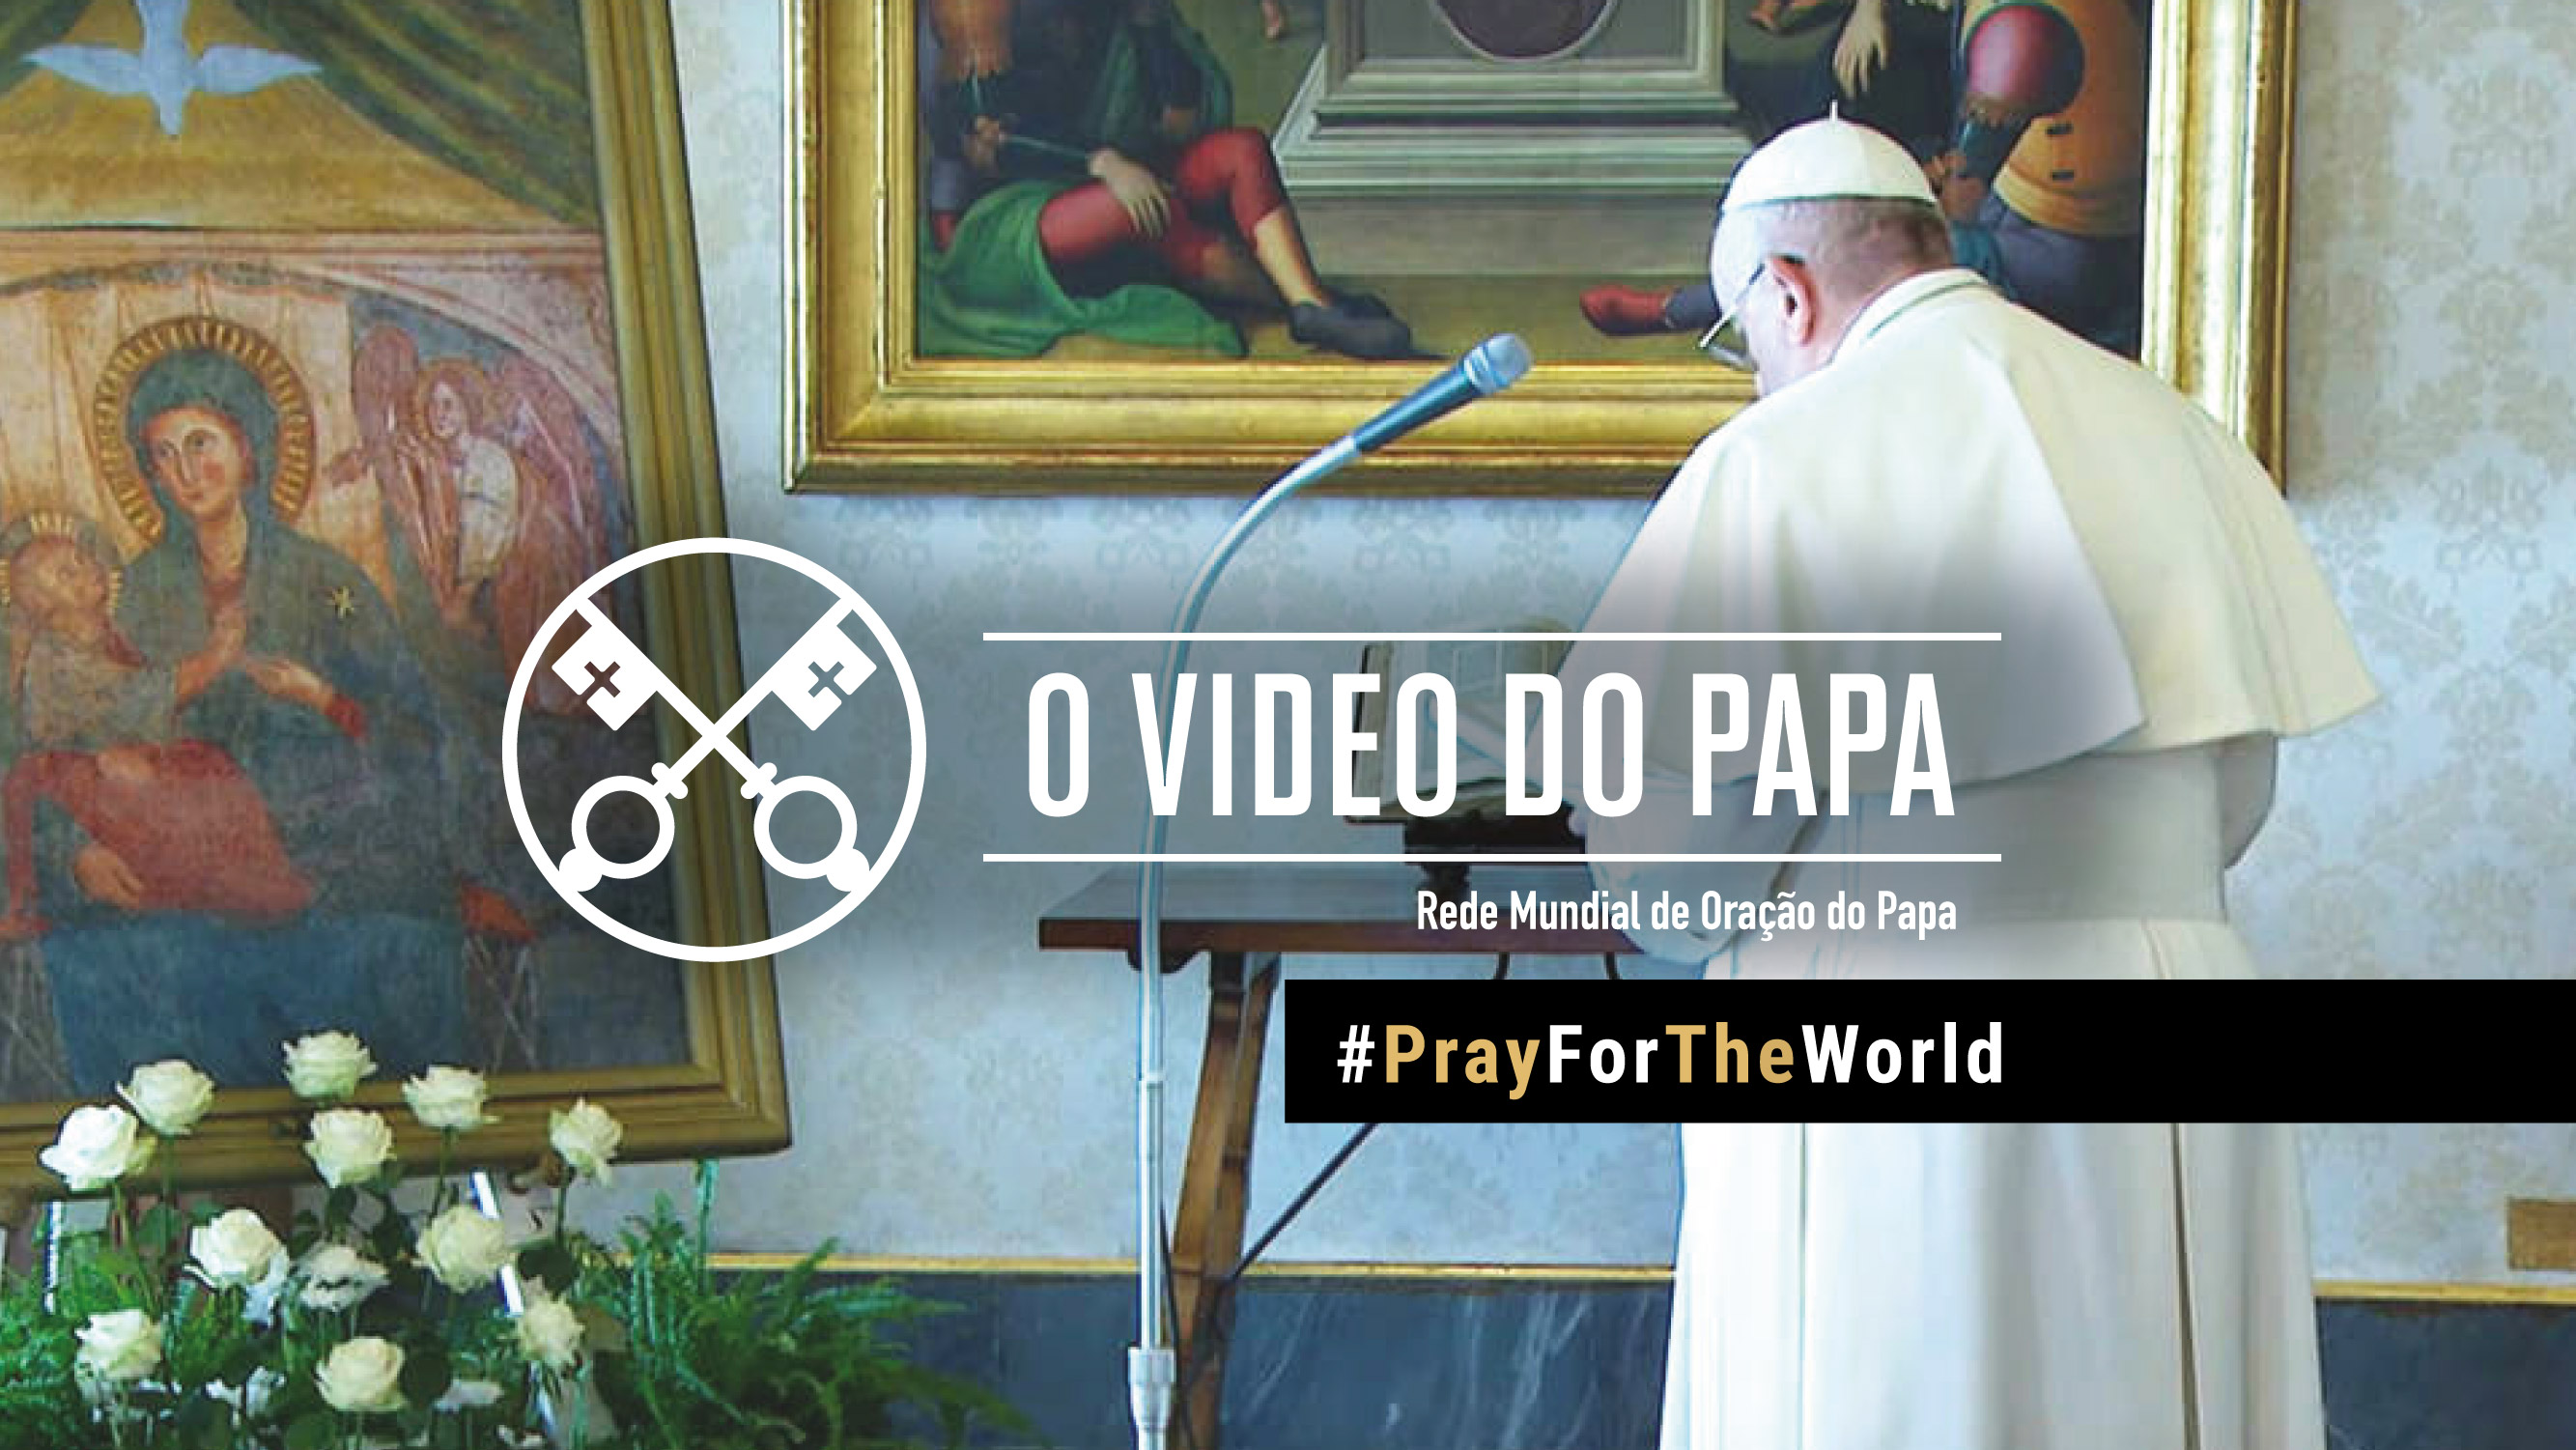 Official Image - TPV PFTW 2020 PT - O Video do Papa - #PrayForTheWorld